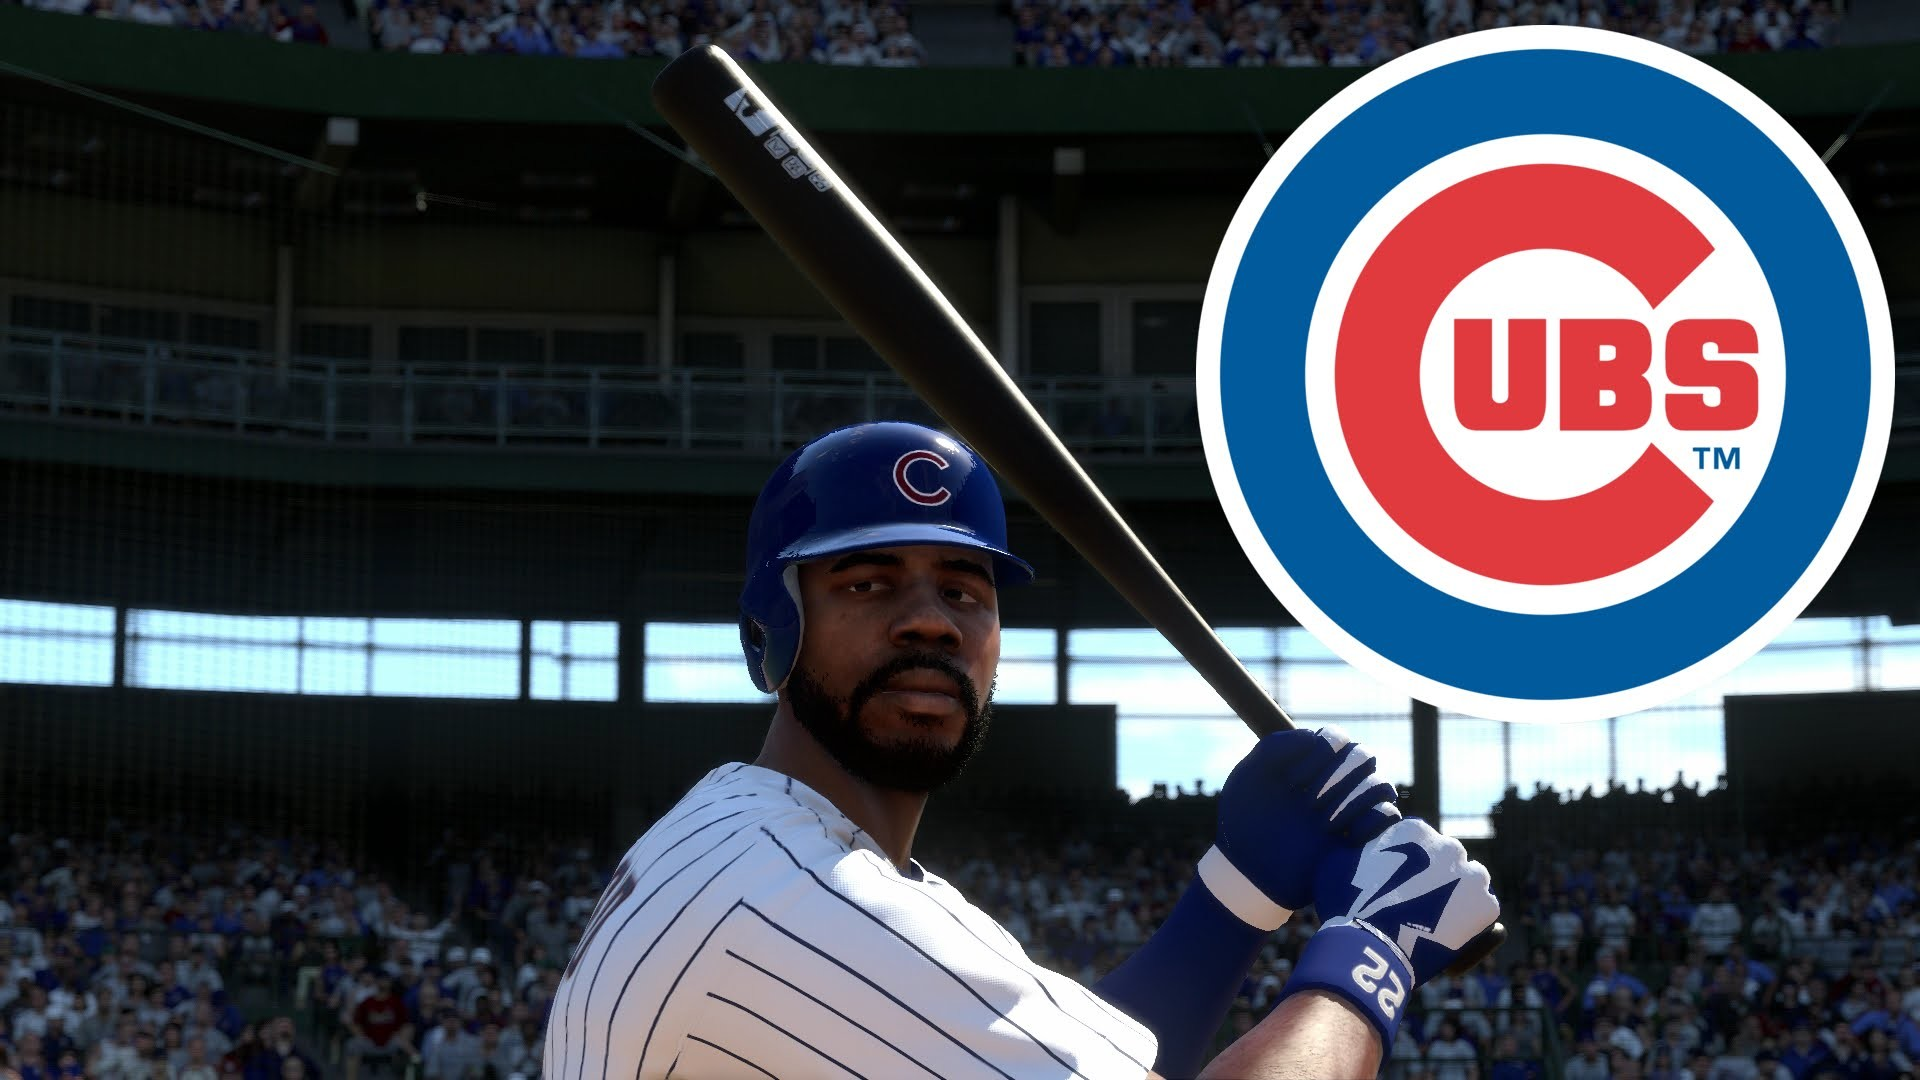 1920x1080 Wallpapers HD Chicago Cubs Backgrounds.